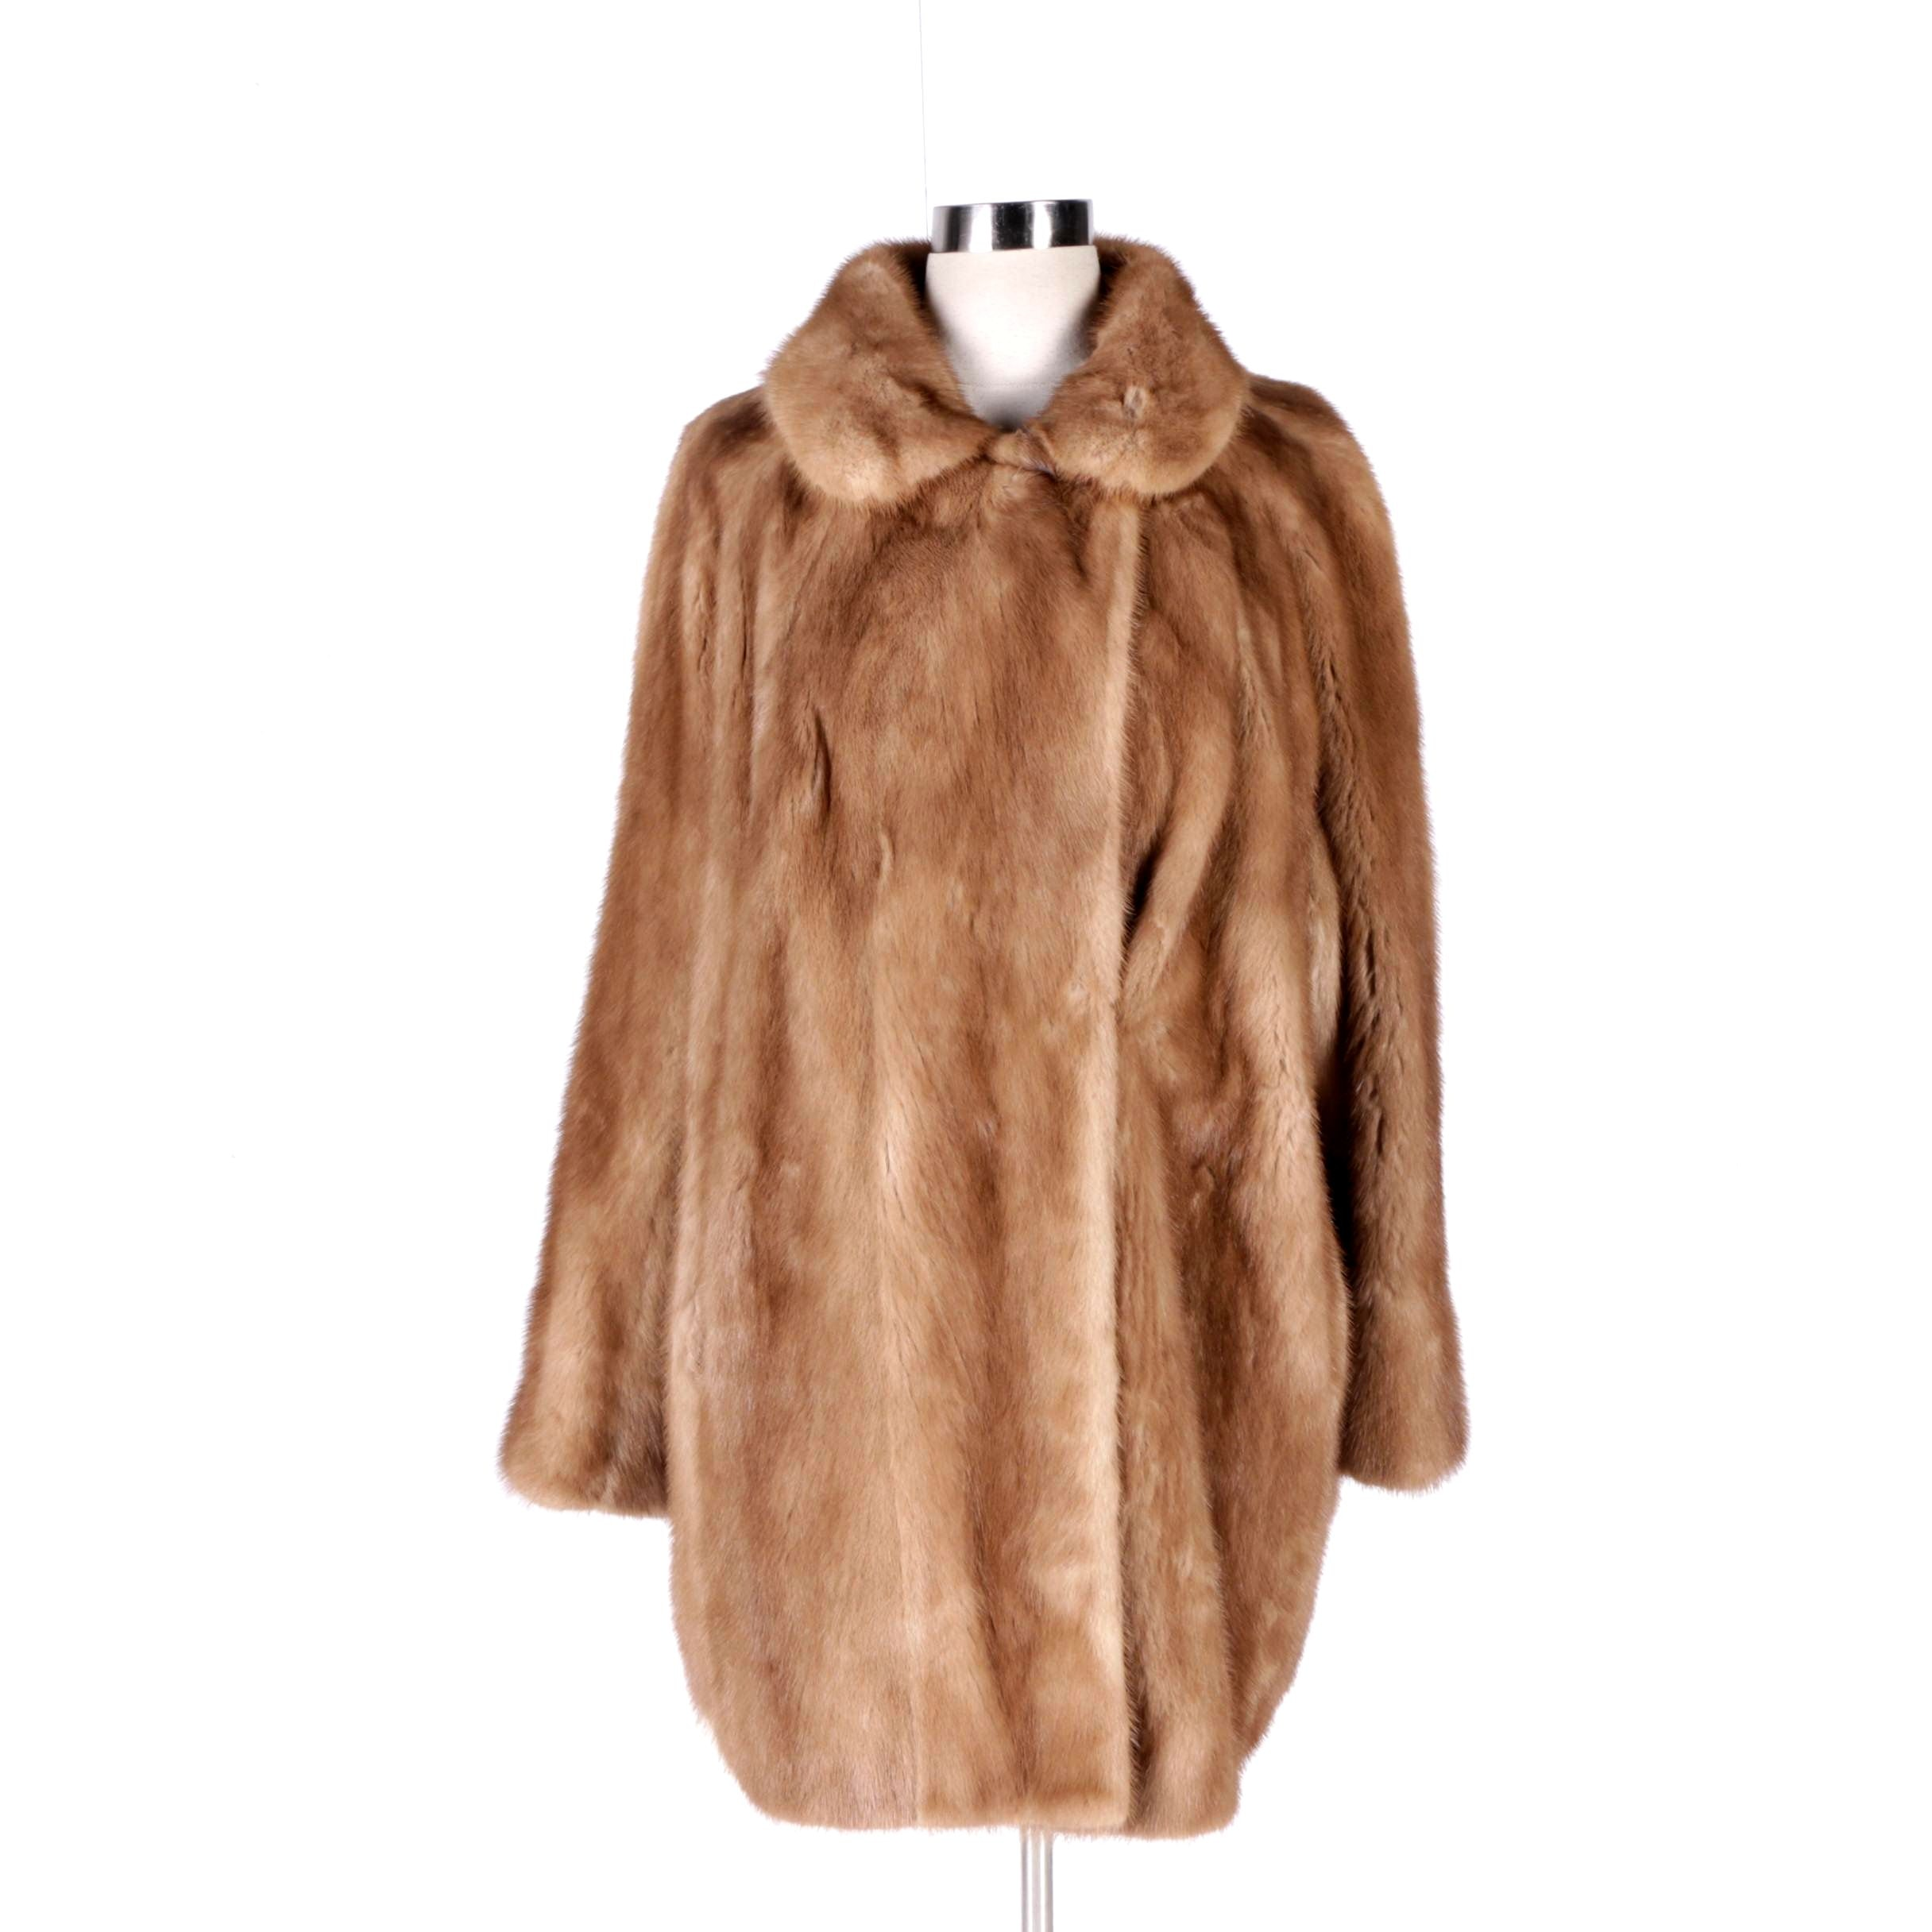 Women's Vintage Stripling's Mink Fur Coat